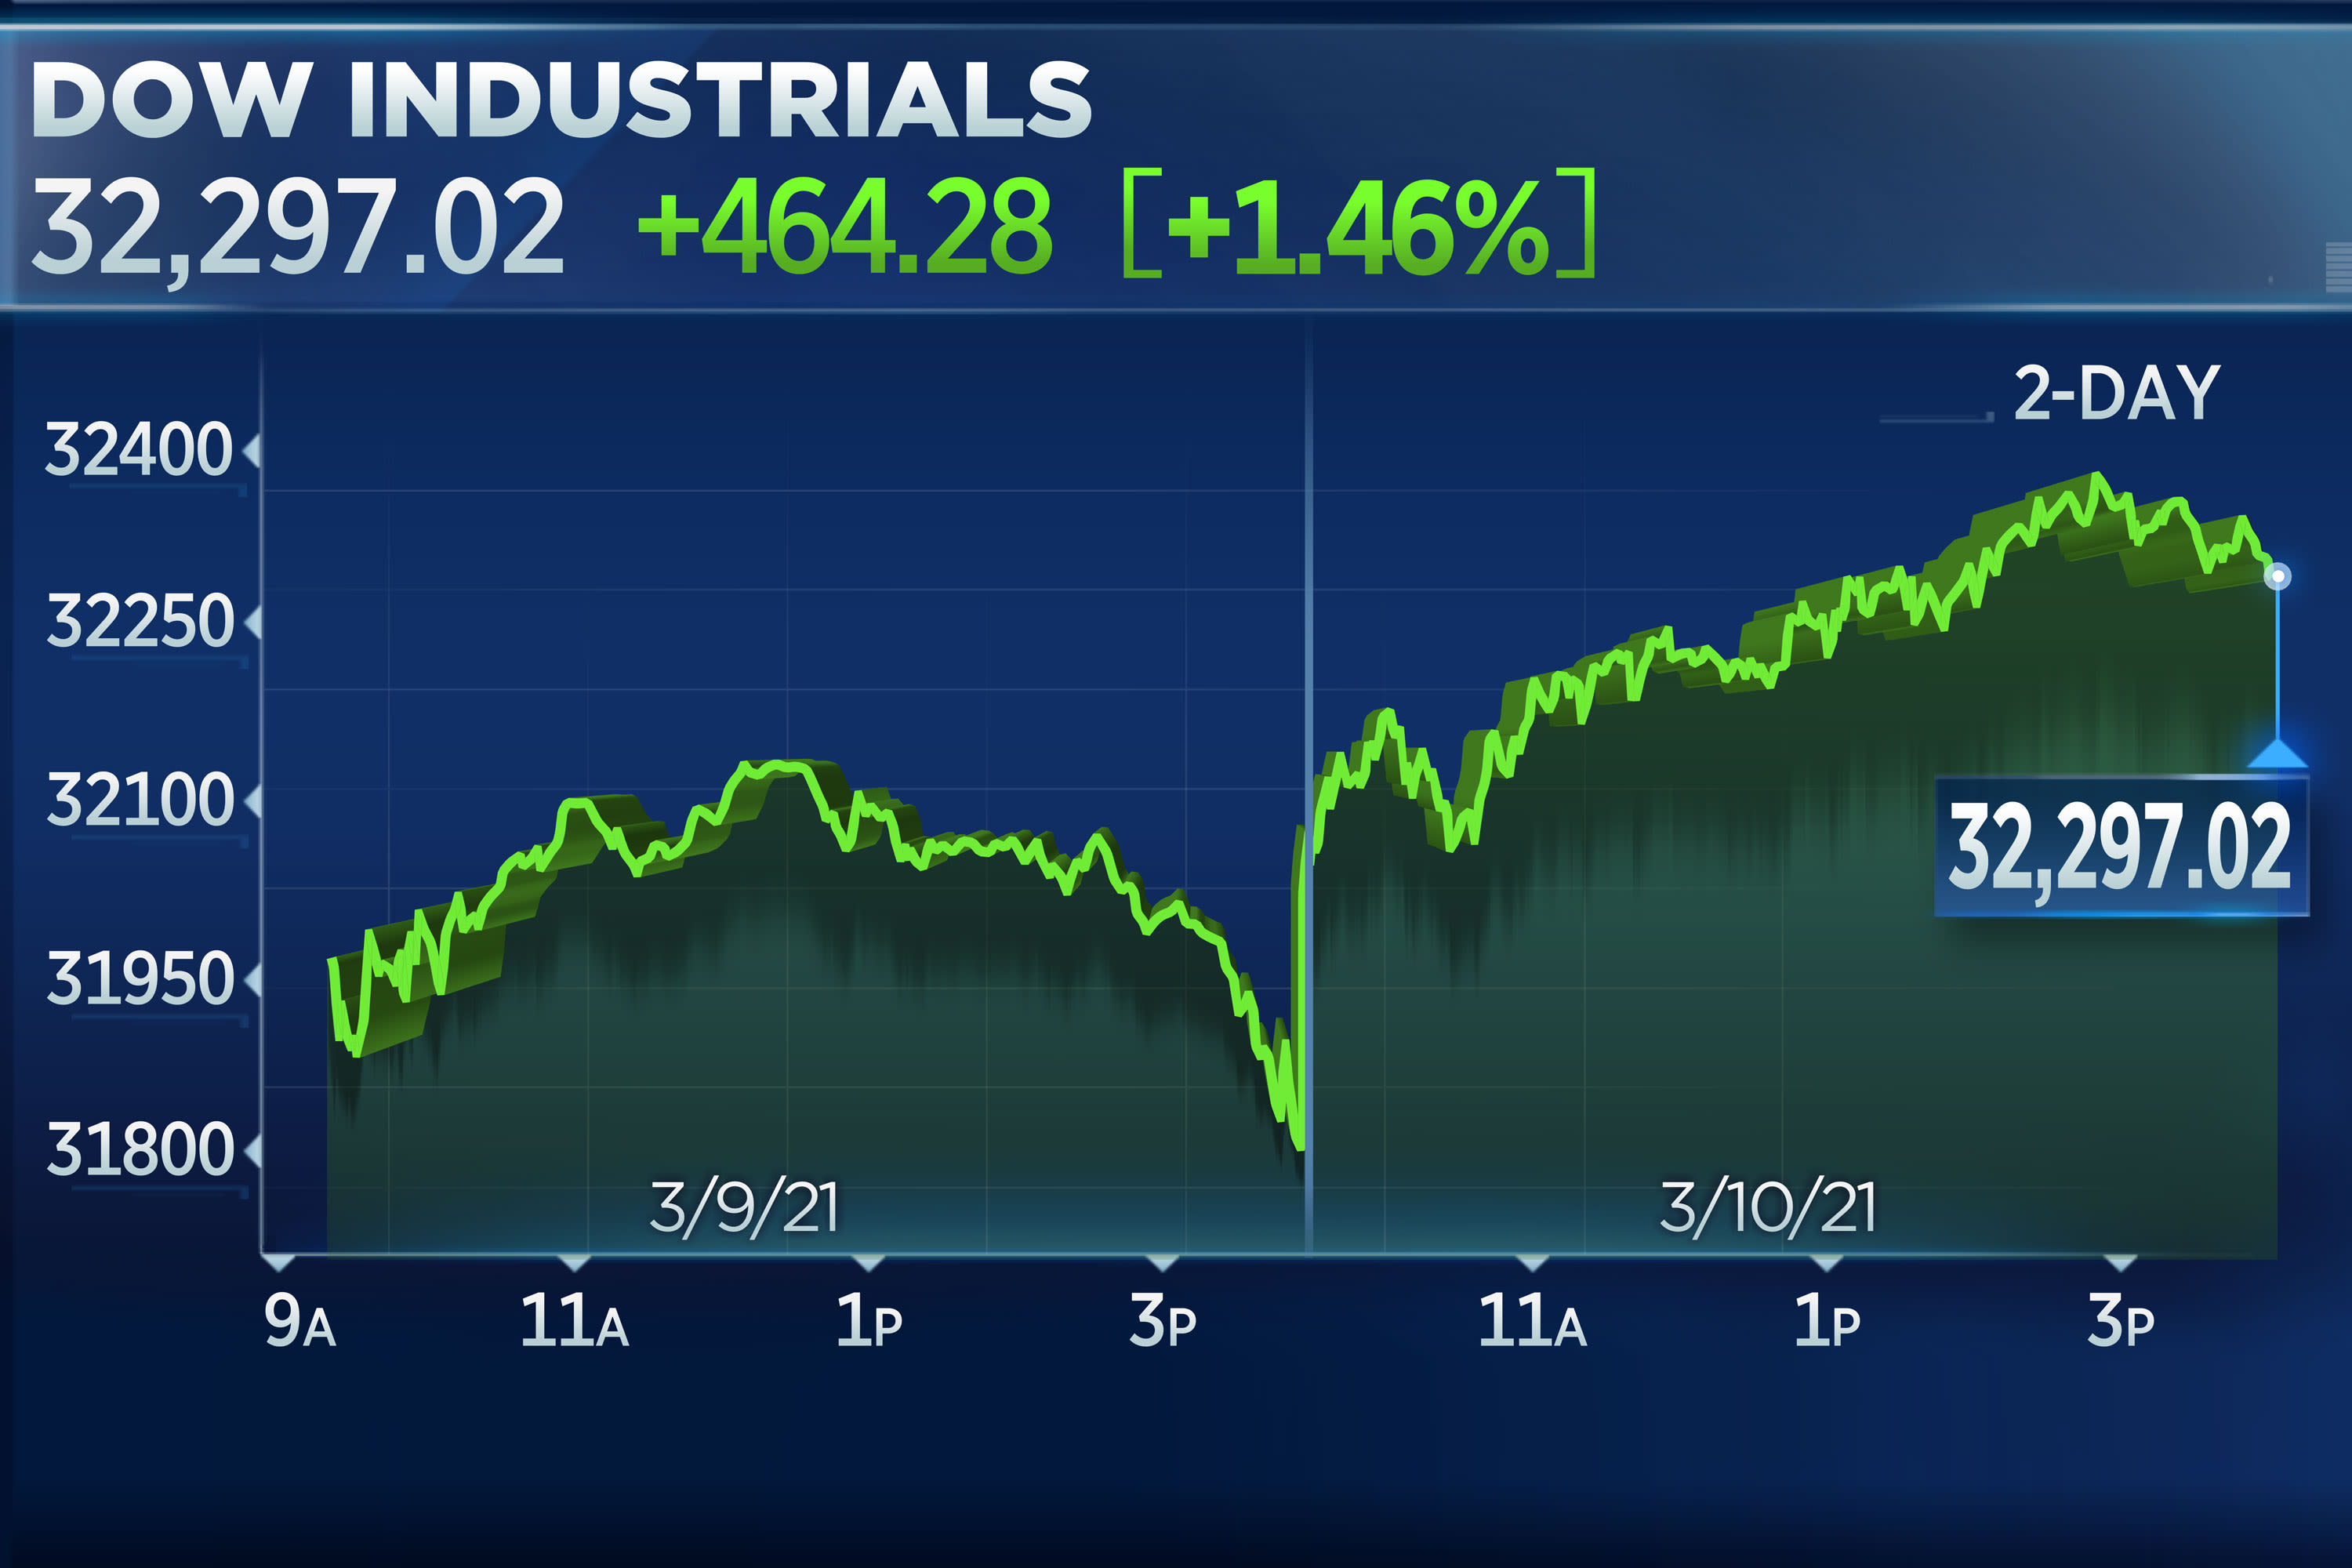 Dow rallies 460 points to close at a record as bond yields fall, House passes new stimulus